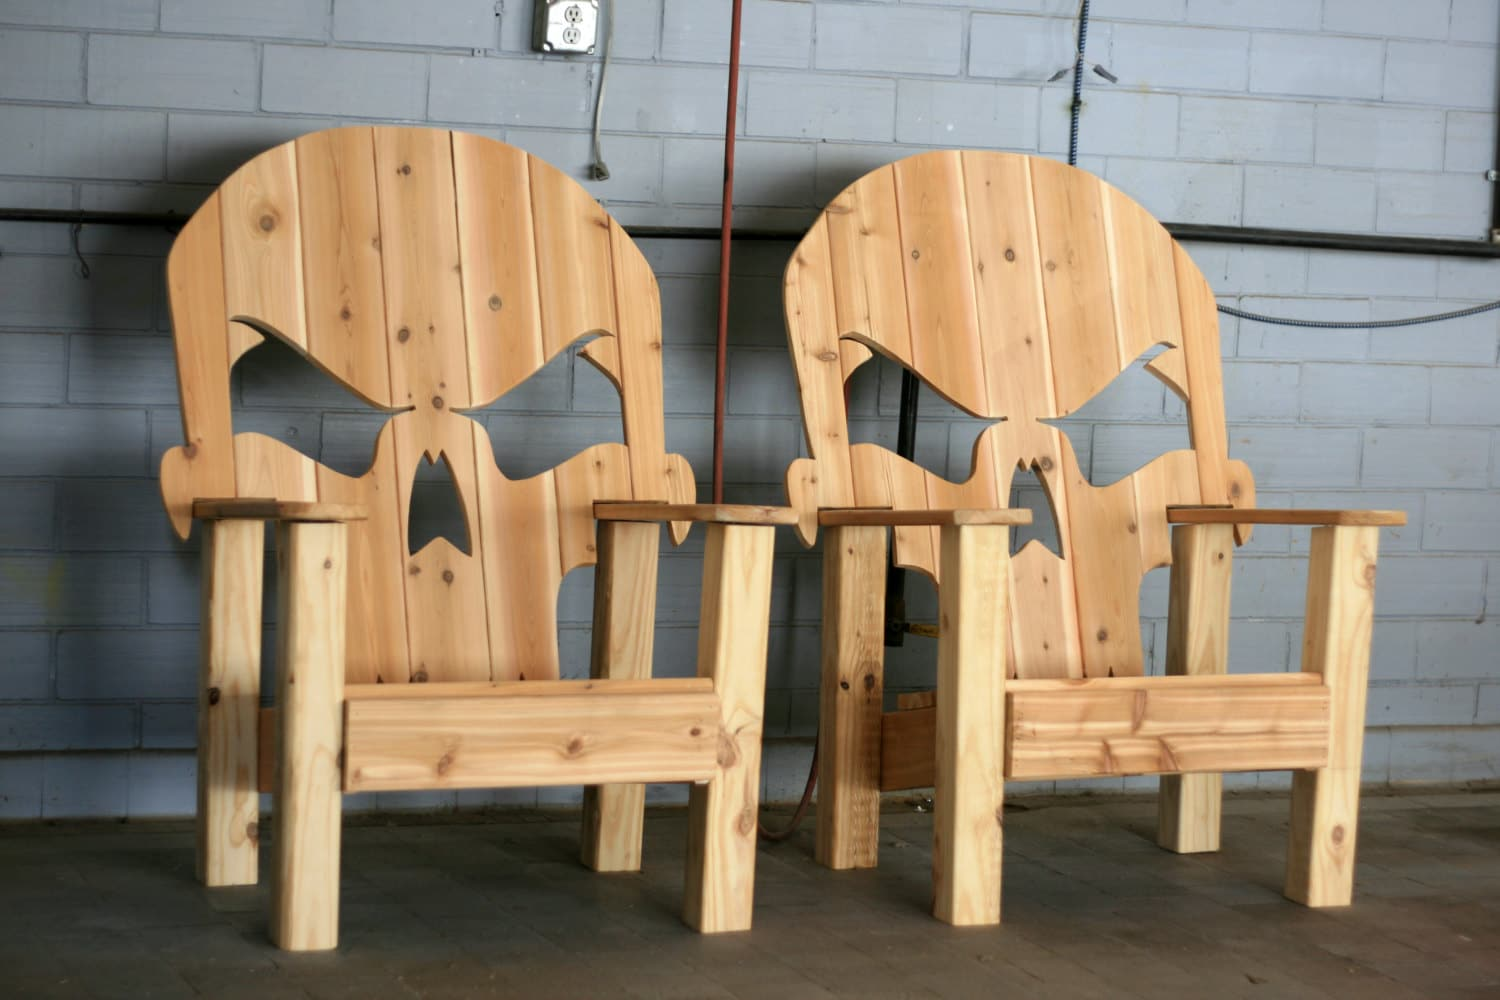 Skull throne local pick up only by wileyconcepts on etsy - Patterns for adirondack chairs ...